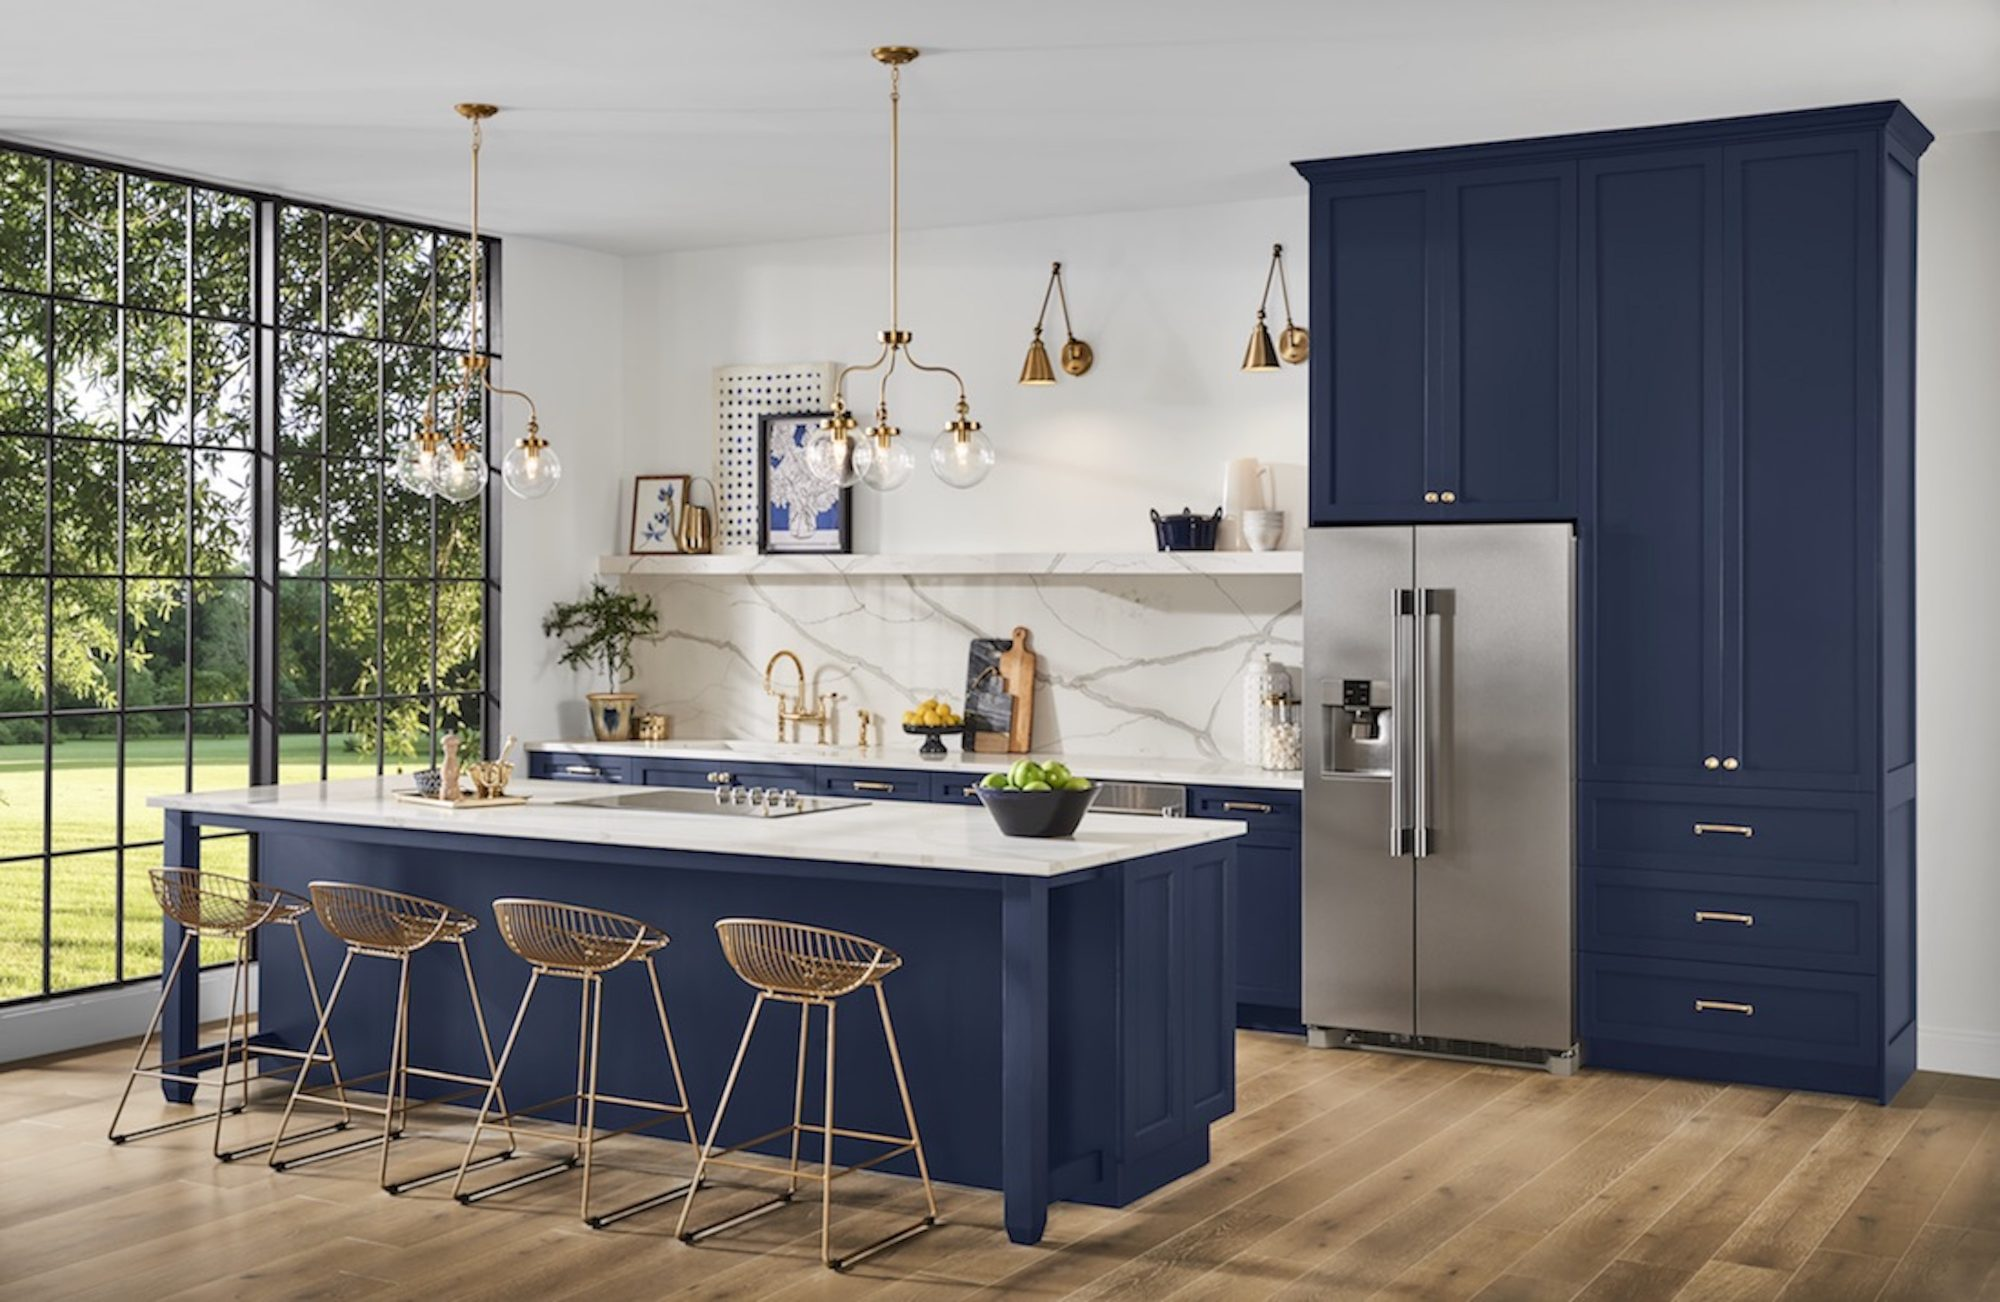 Sherwin-Williams Announces 2020 Color of the Year